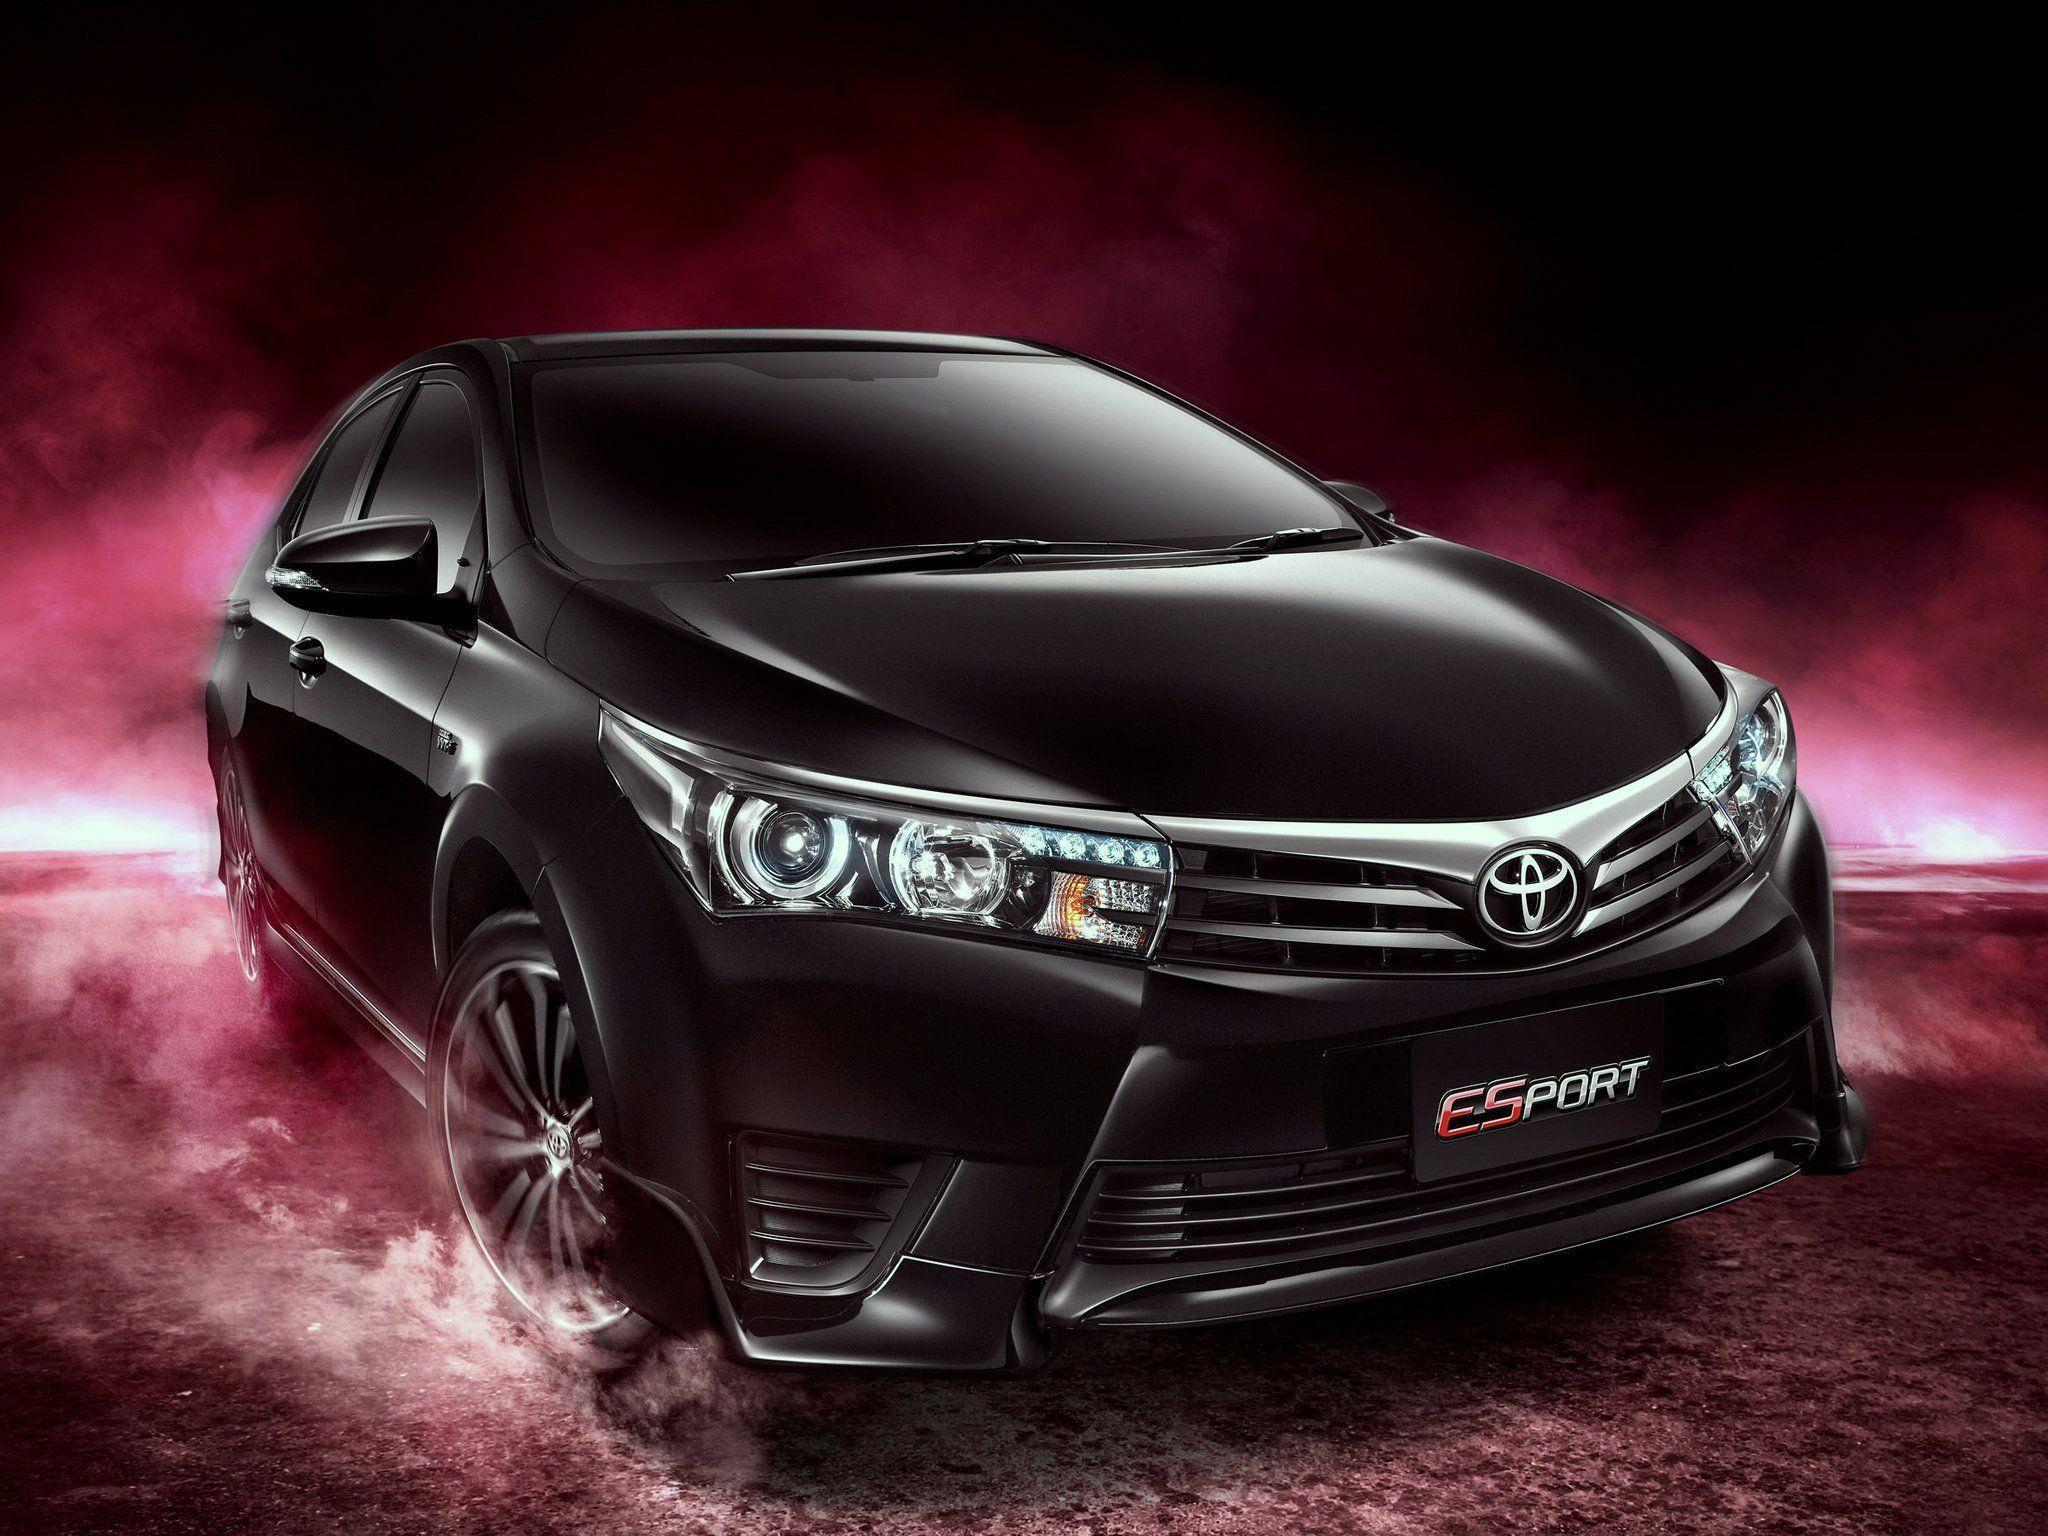 corolla wallpapers | WallpaperUP